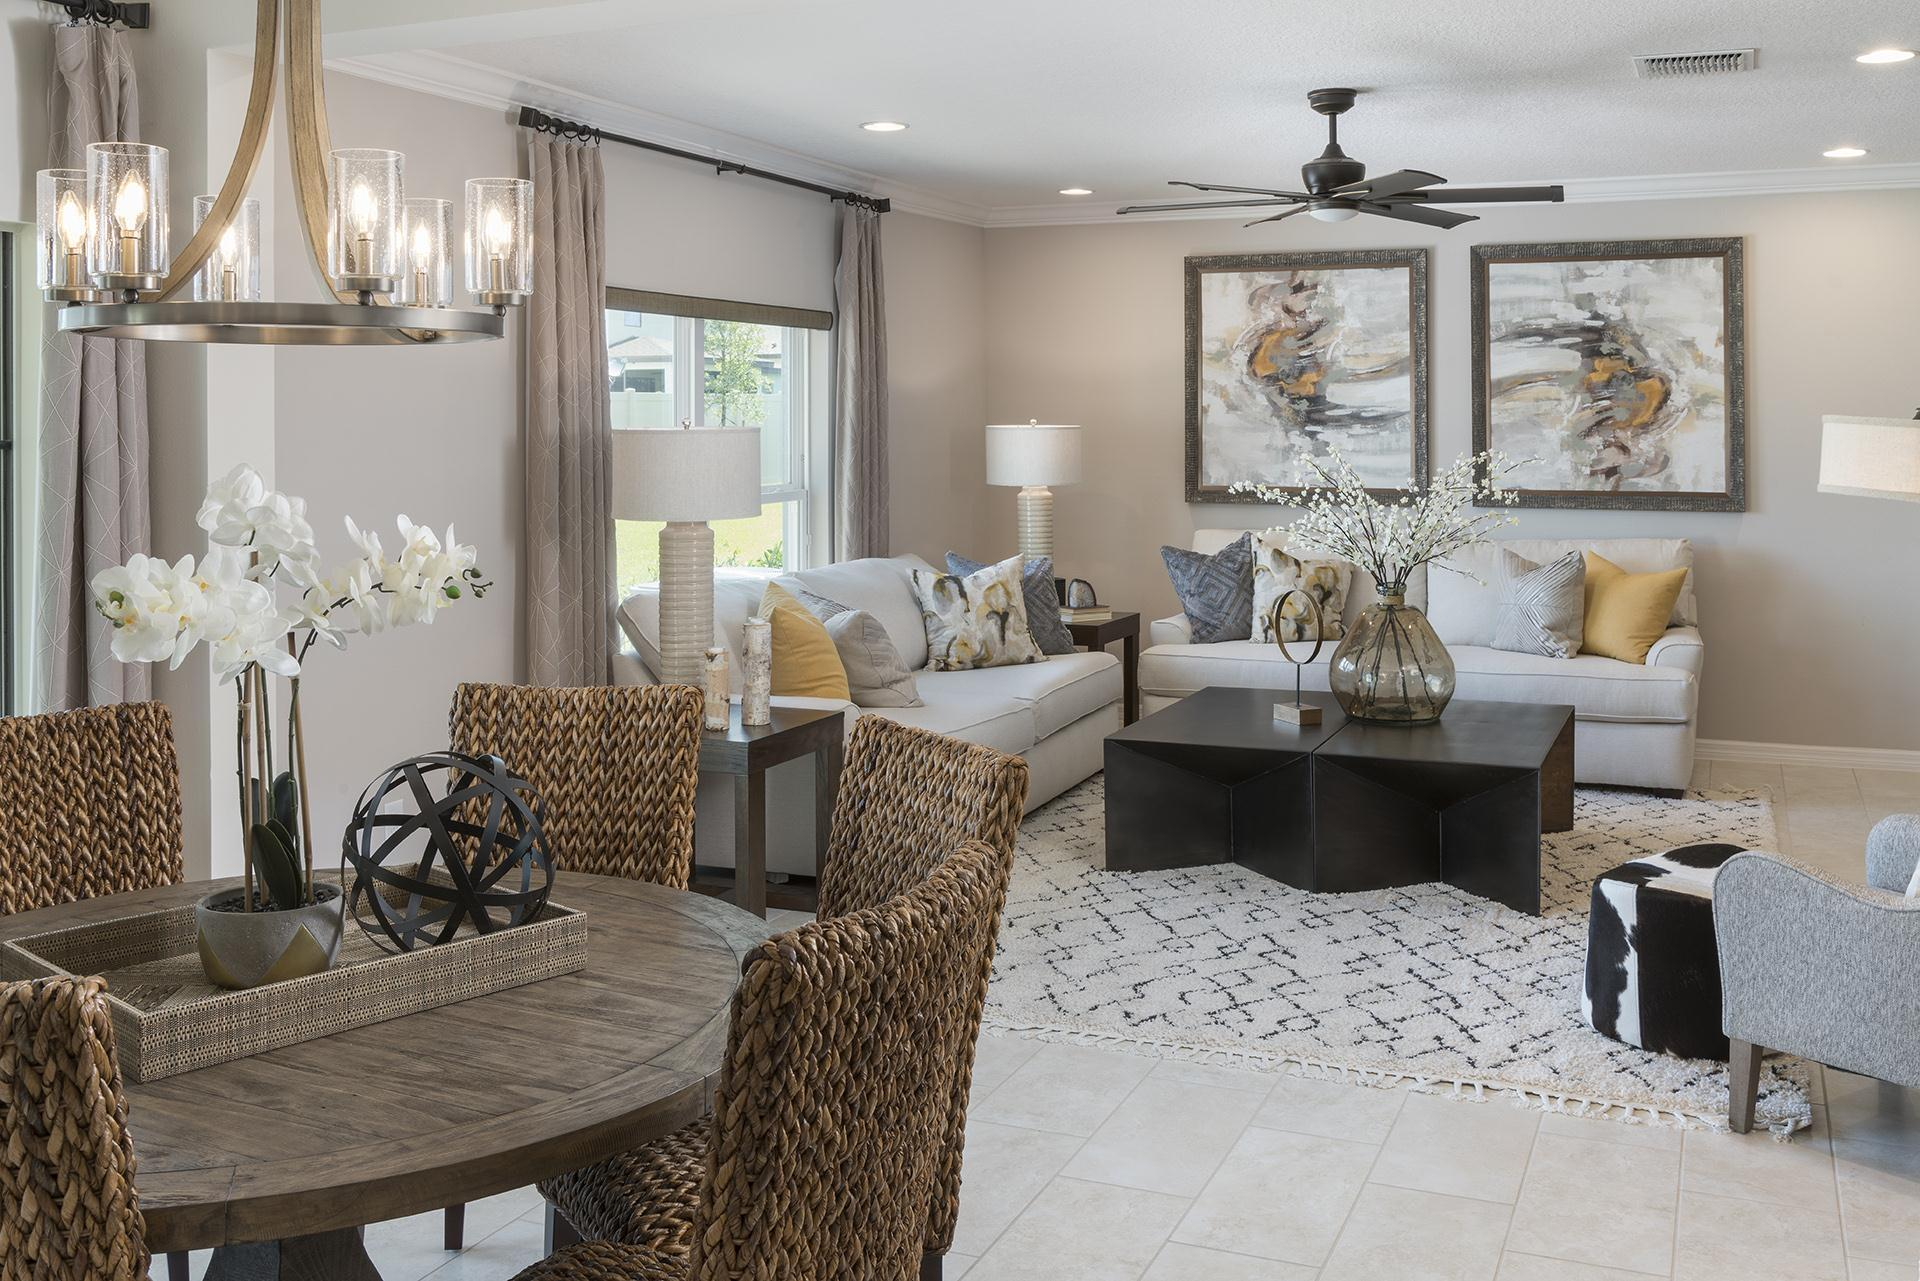 Living Area featured in the Newcastle Premier By Hanover Family Builders in Orlando, FL